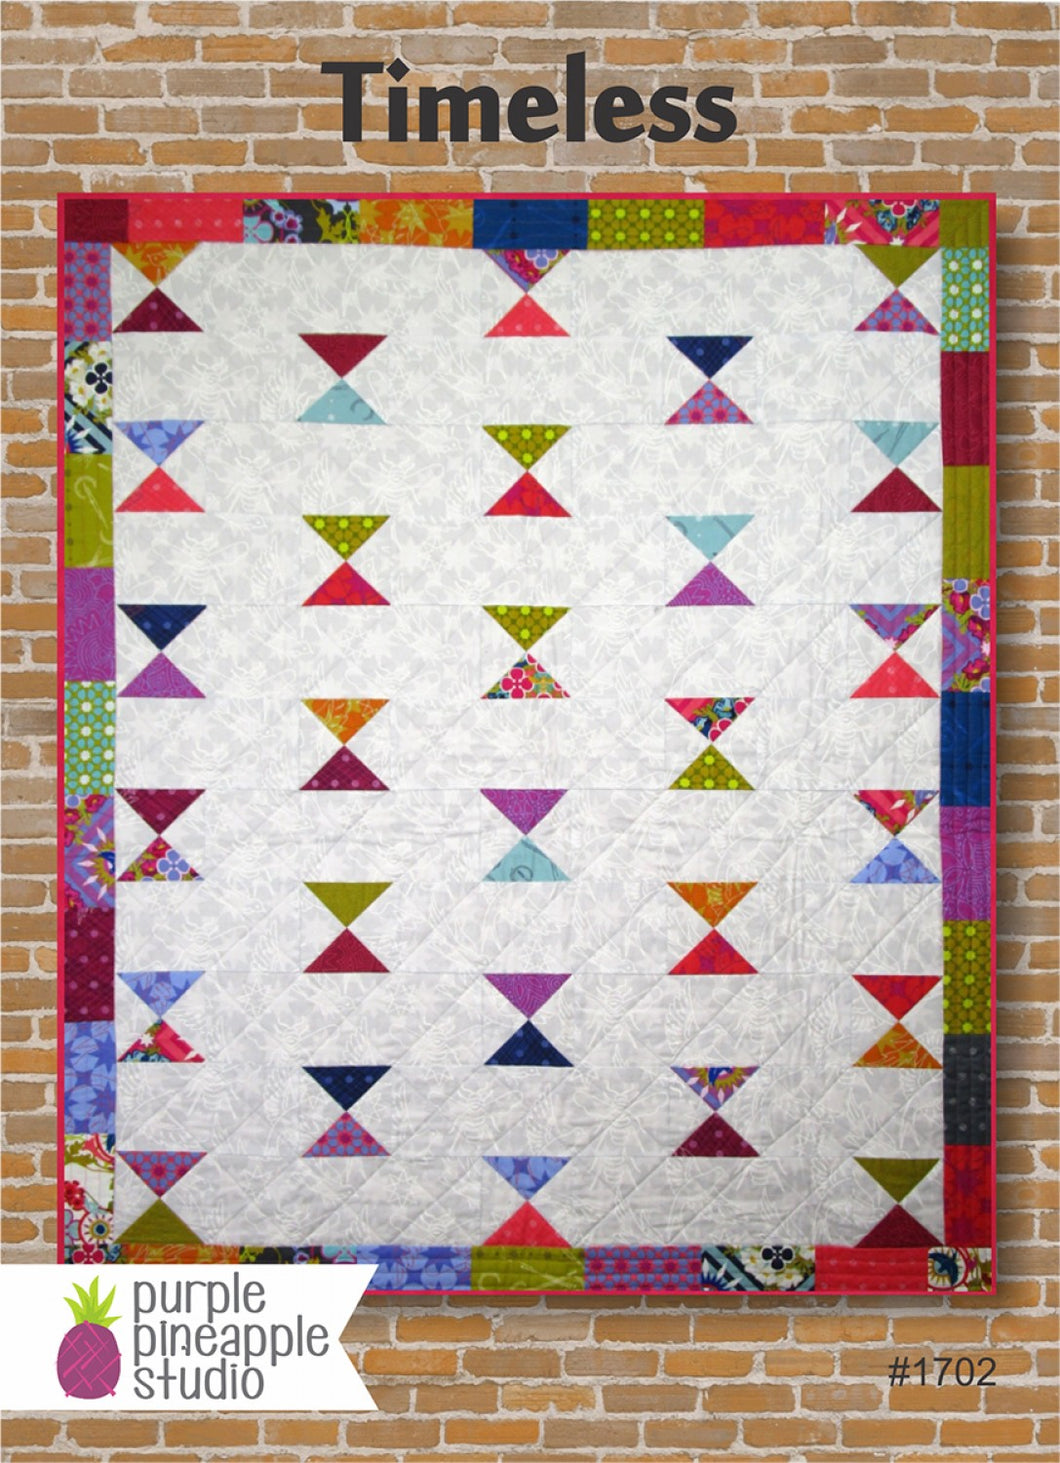 Purple Pineapple Studio: Timeless Pattern - PPS1702